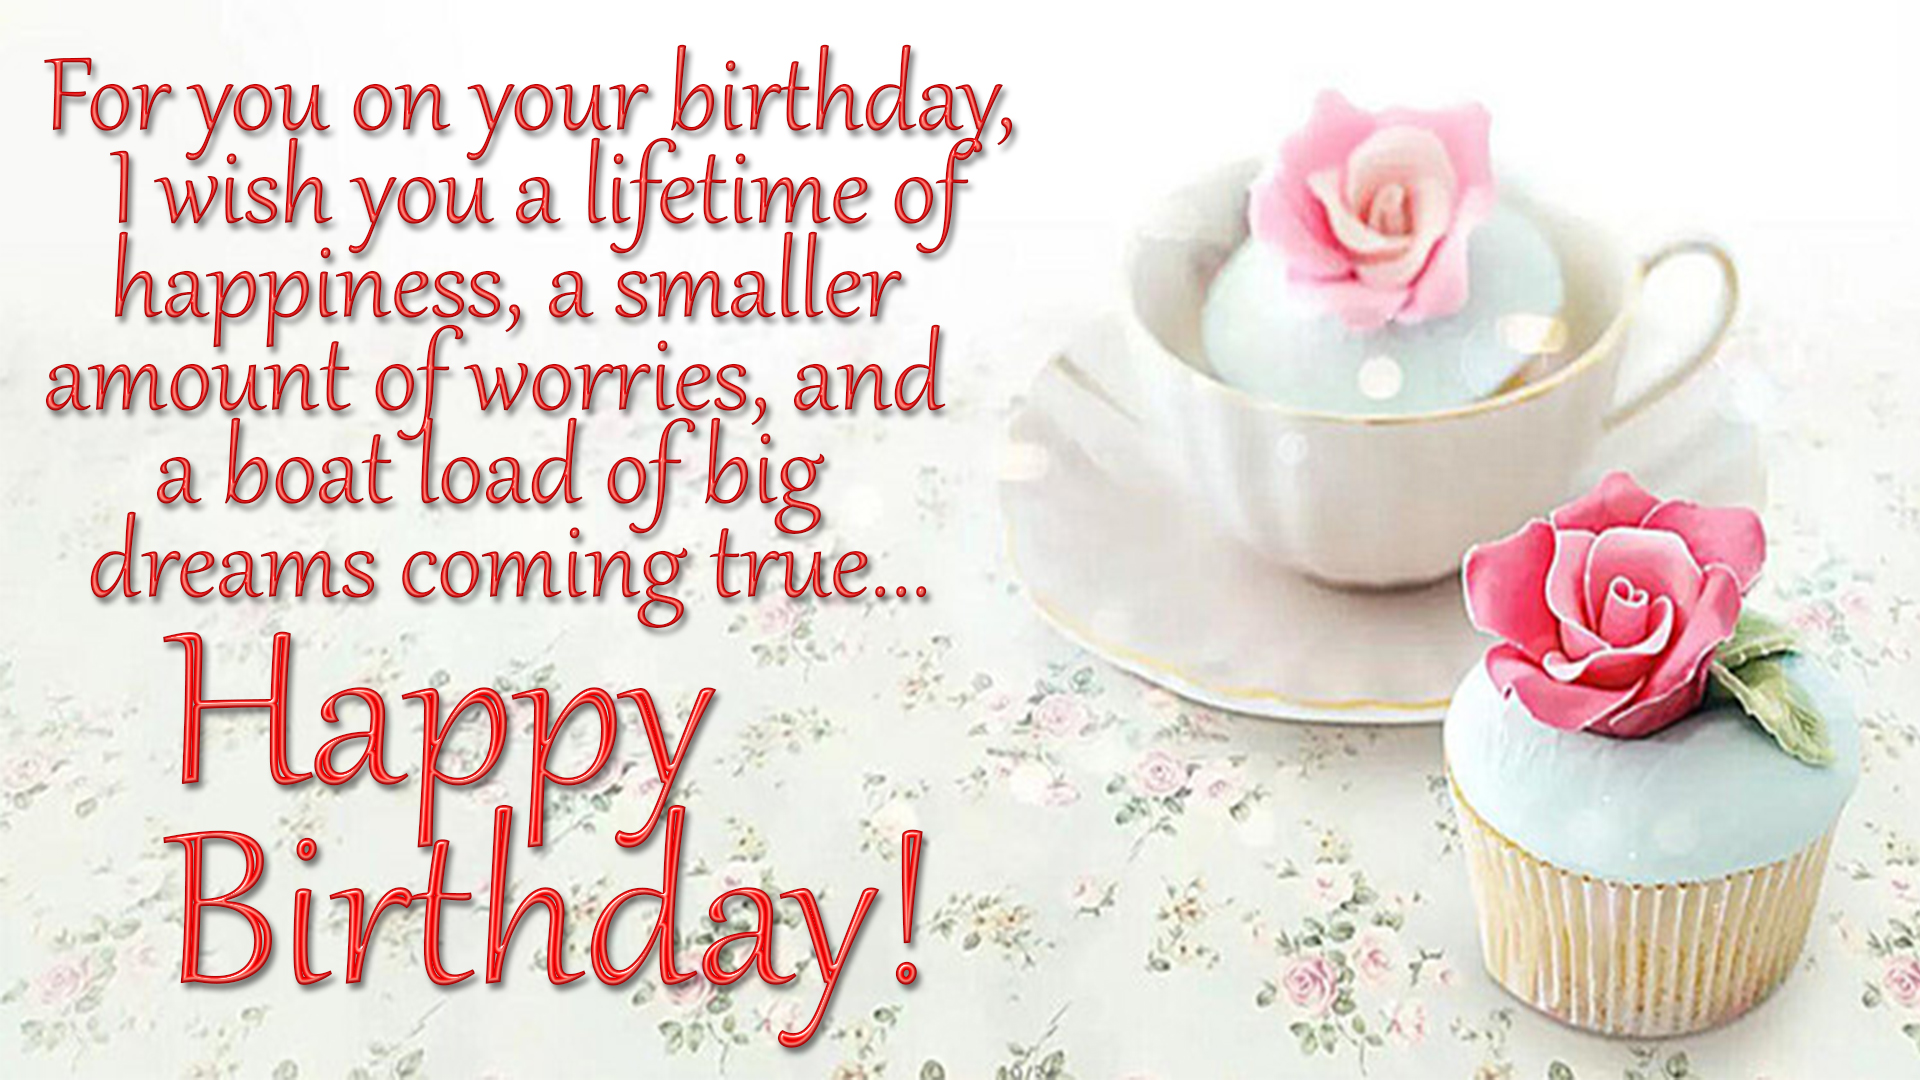 new happy birthday wishes 2020  birthday messages